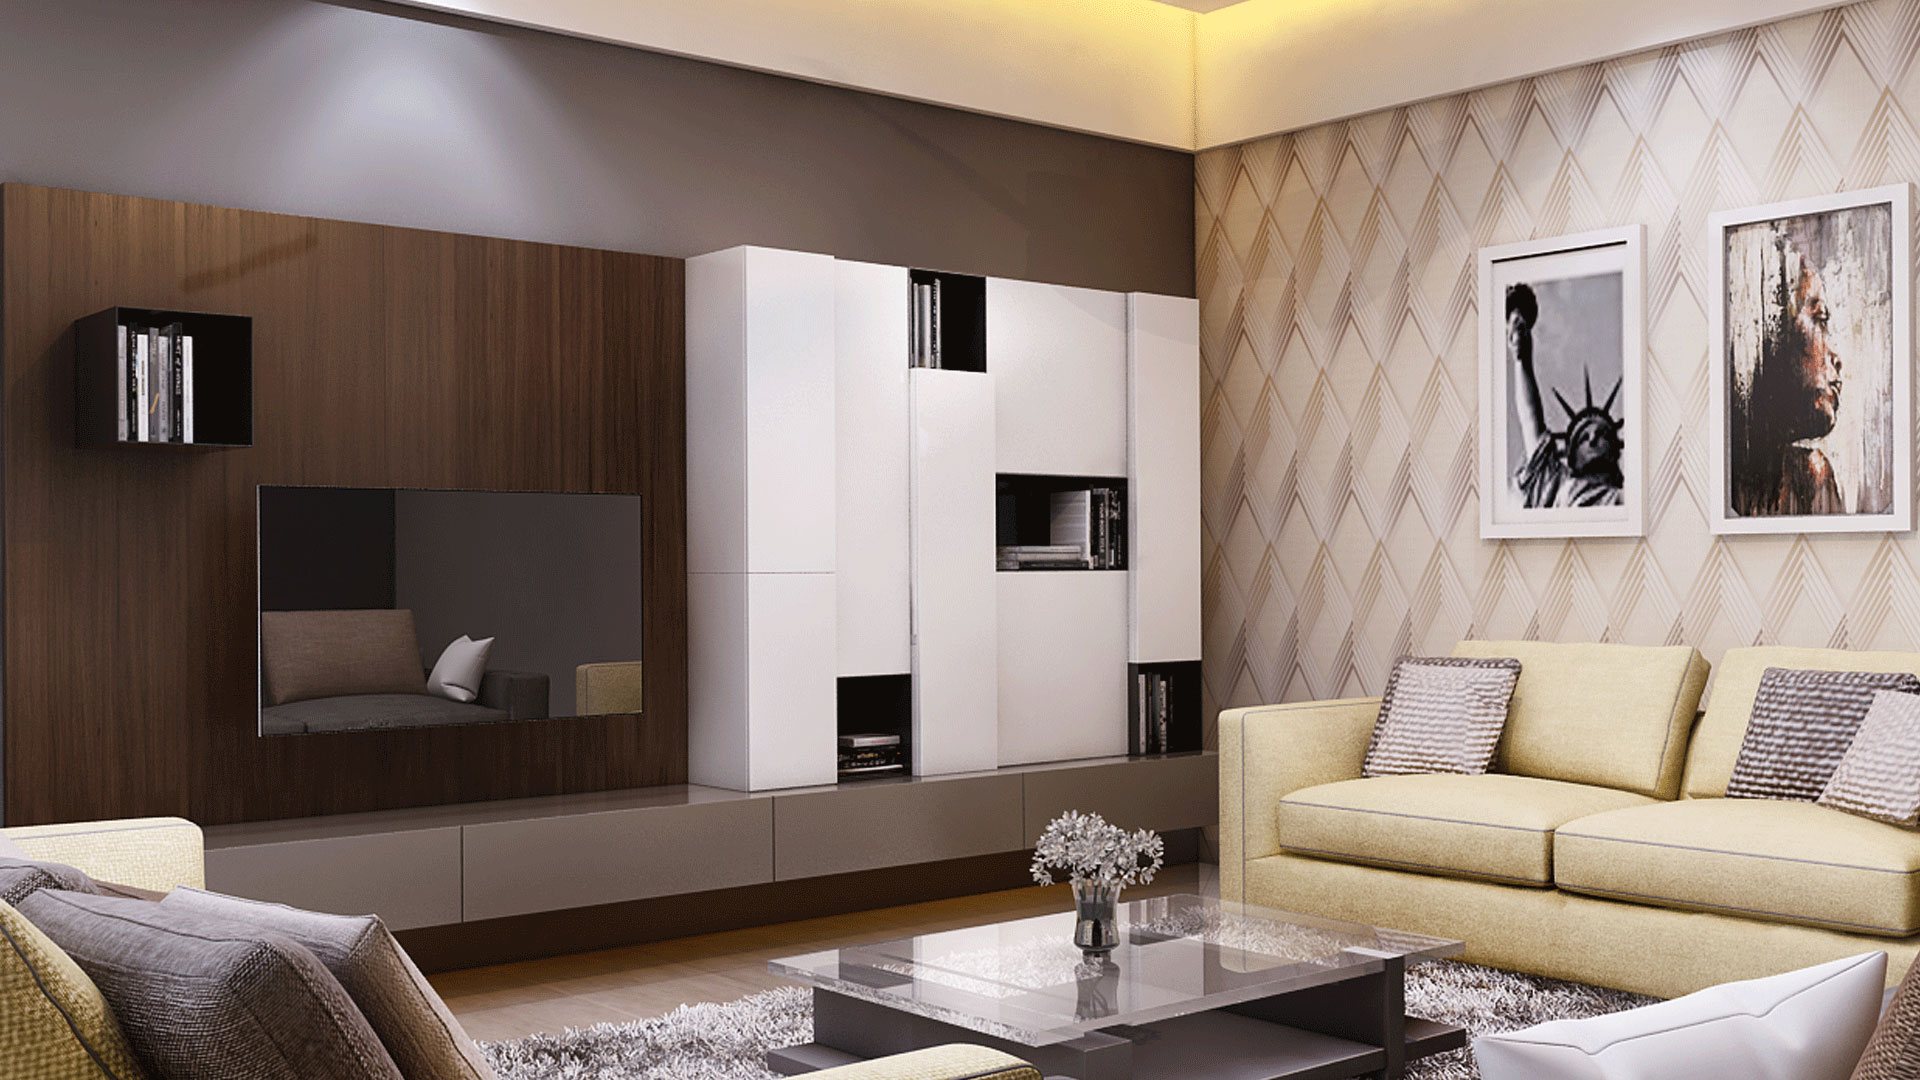 prestige-botanique-Apartment-in-Basavangudi-Bangalore-Image-04